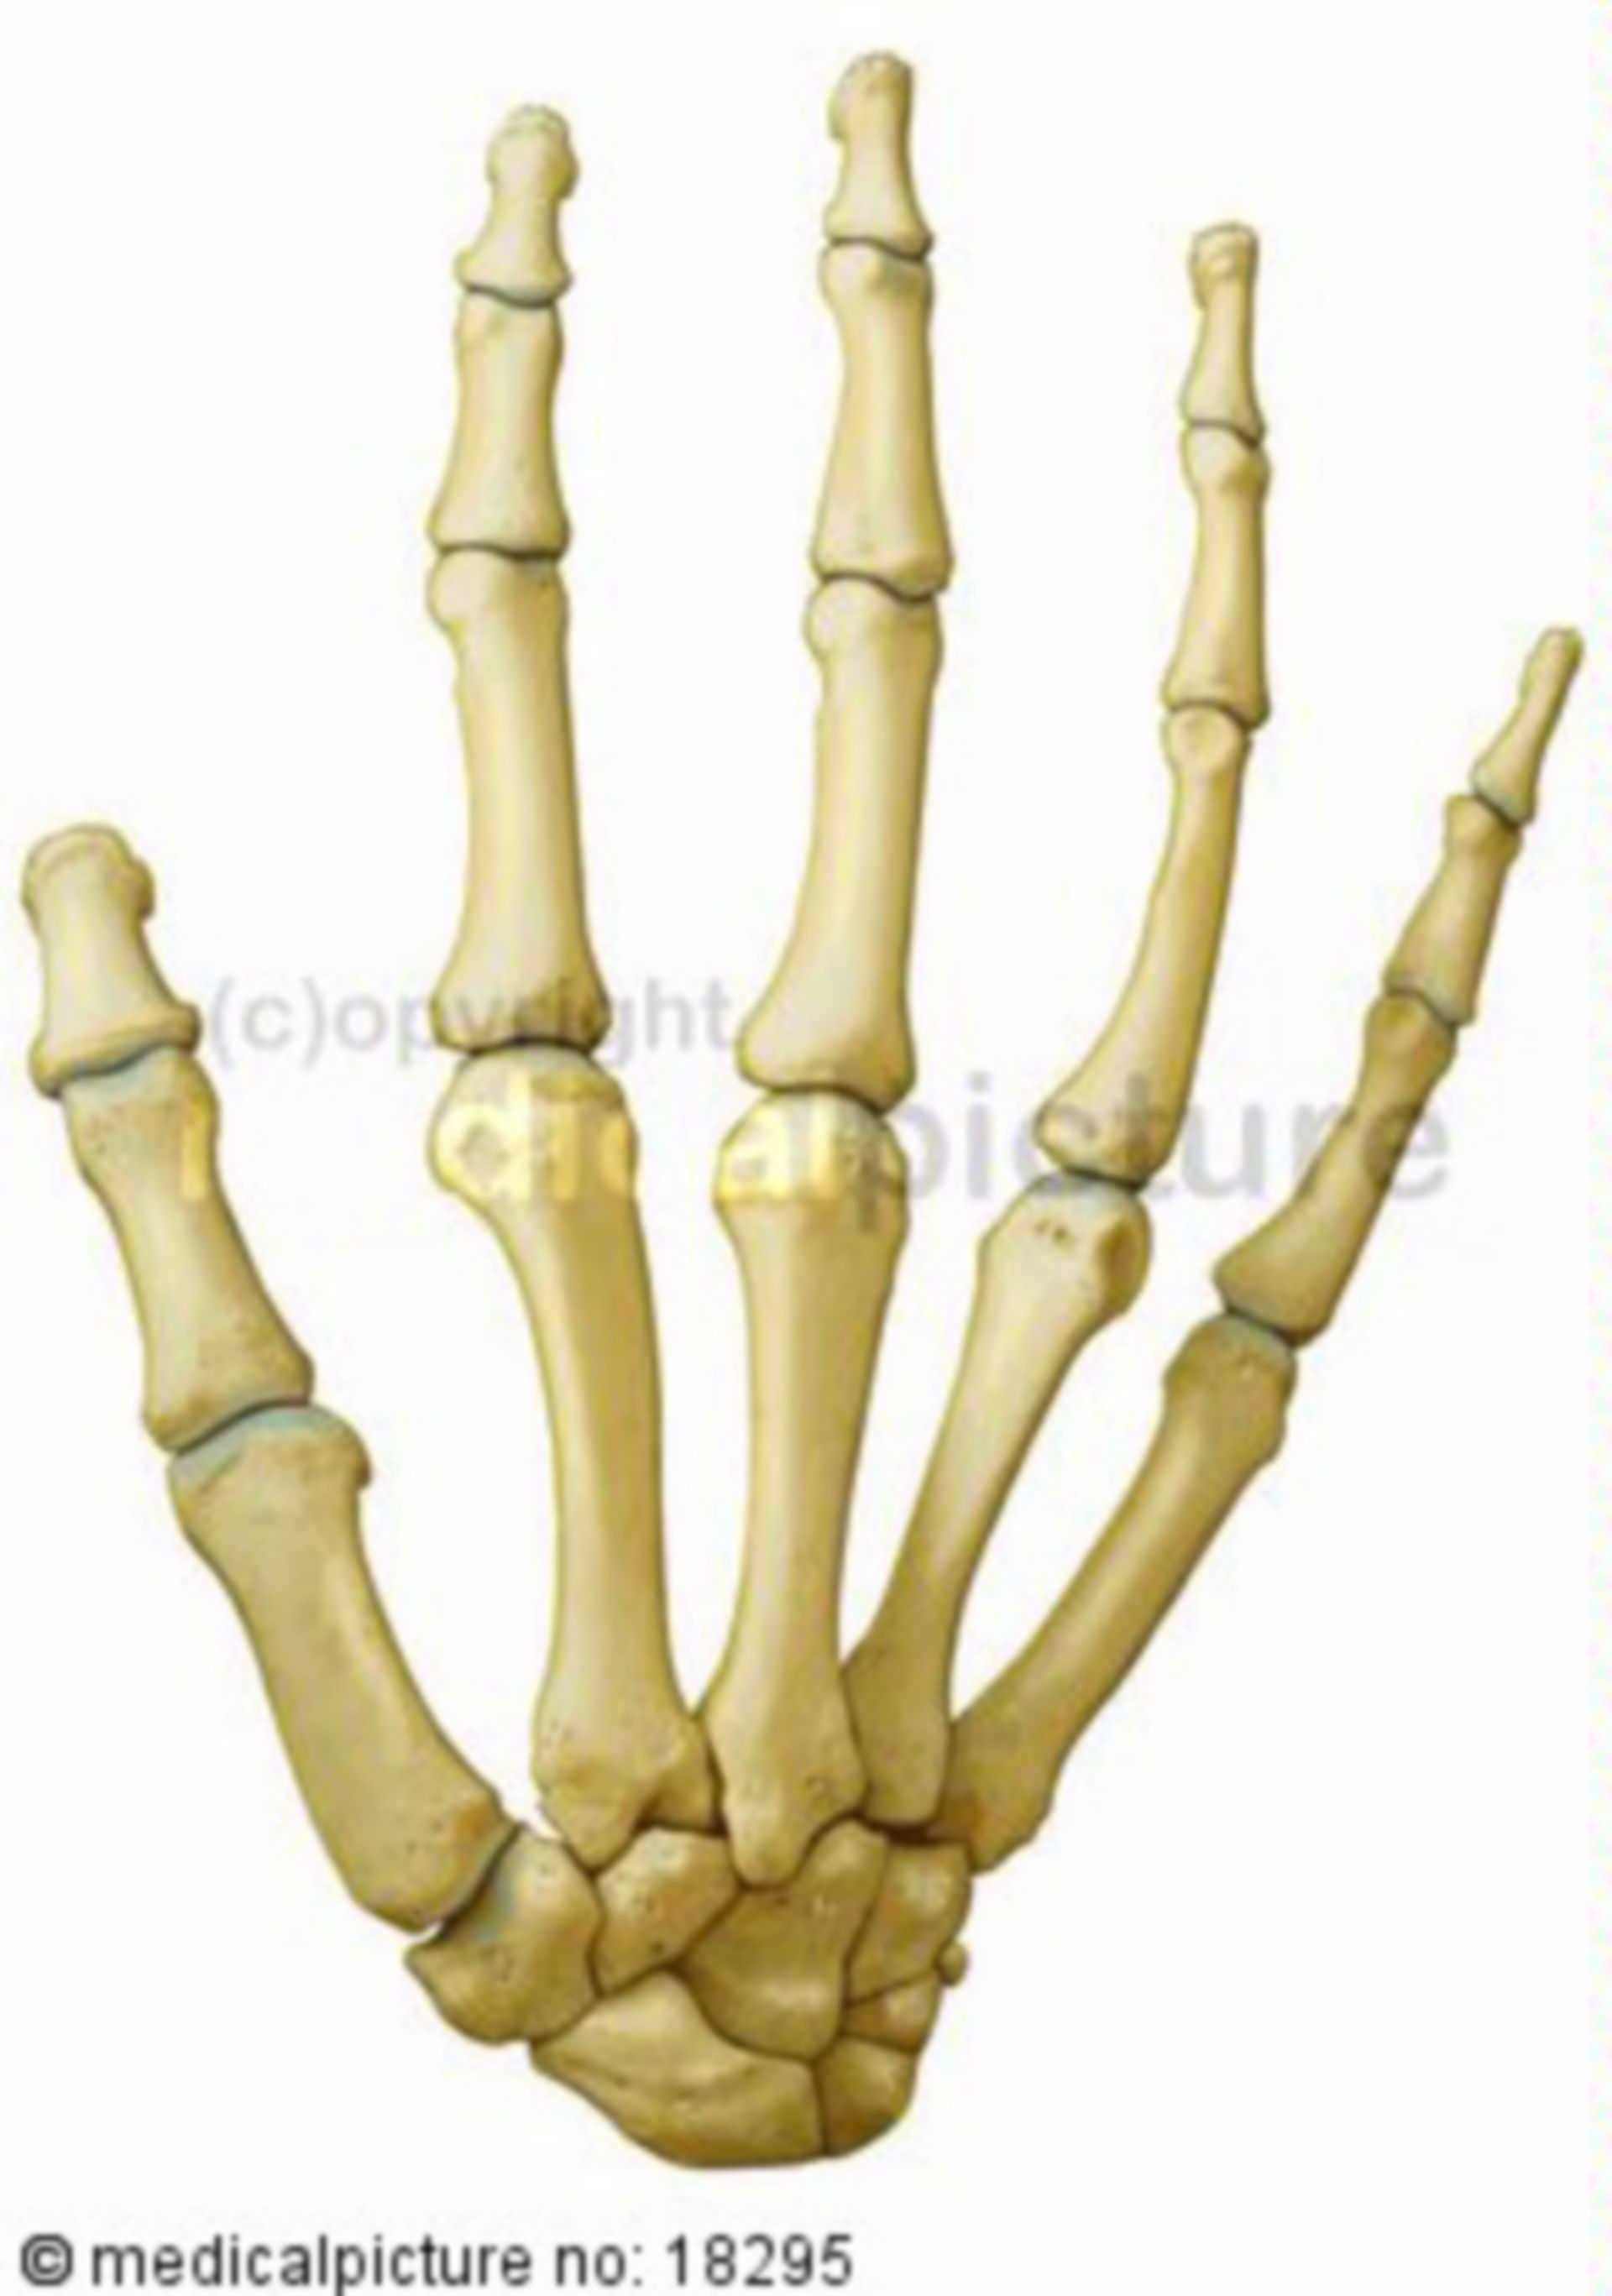 Bones and joints of the hand